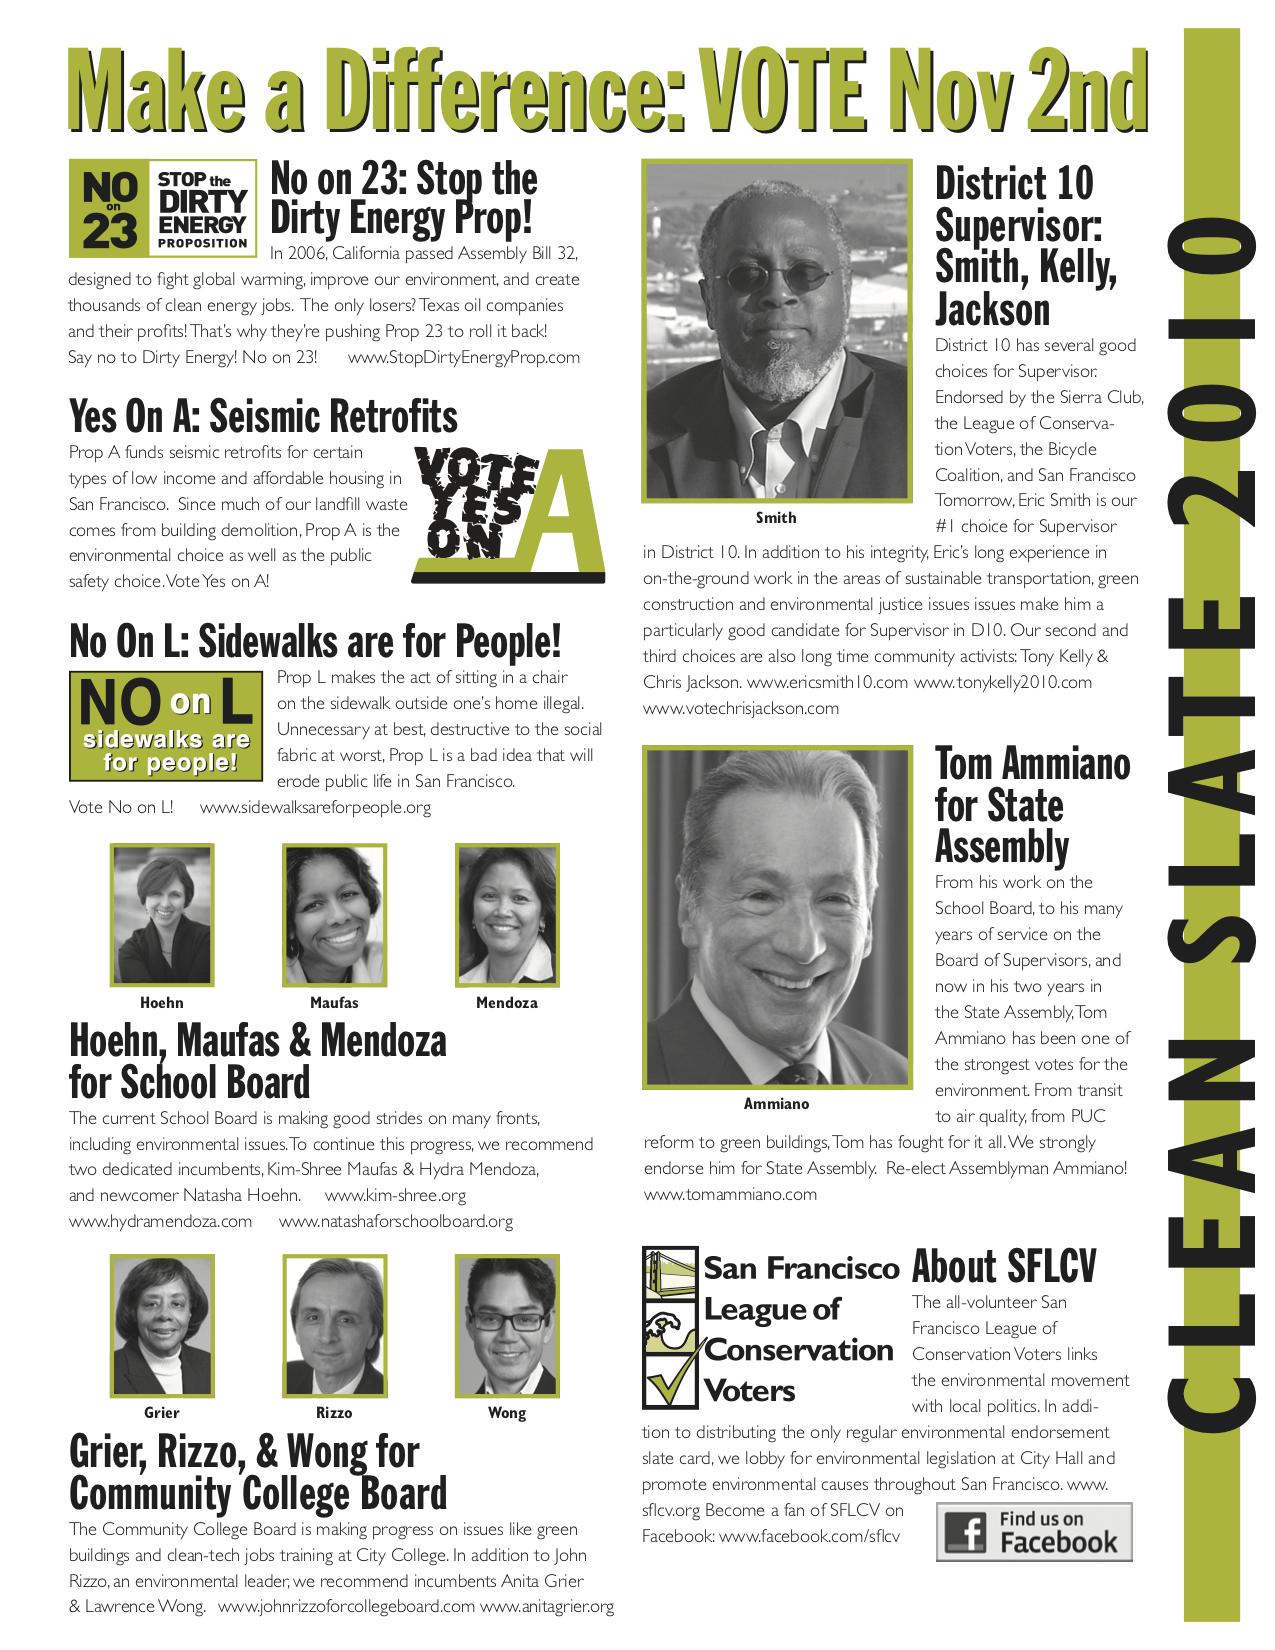 November 2010 District 10 SFLCV slater mailer